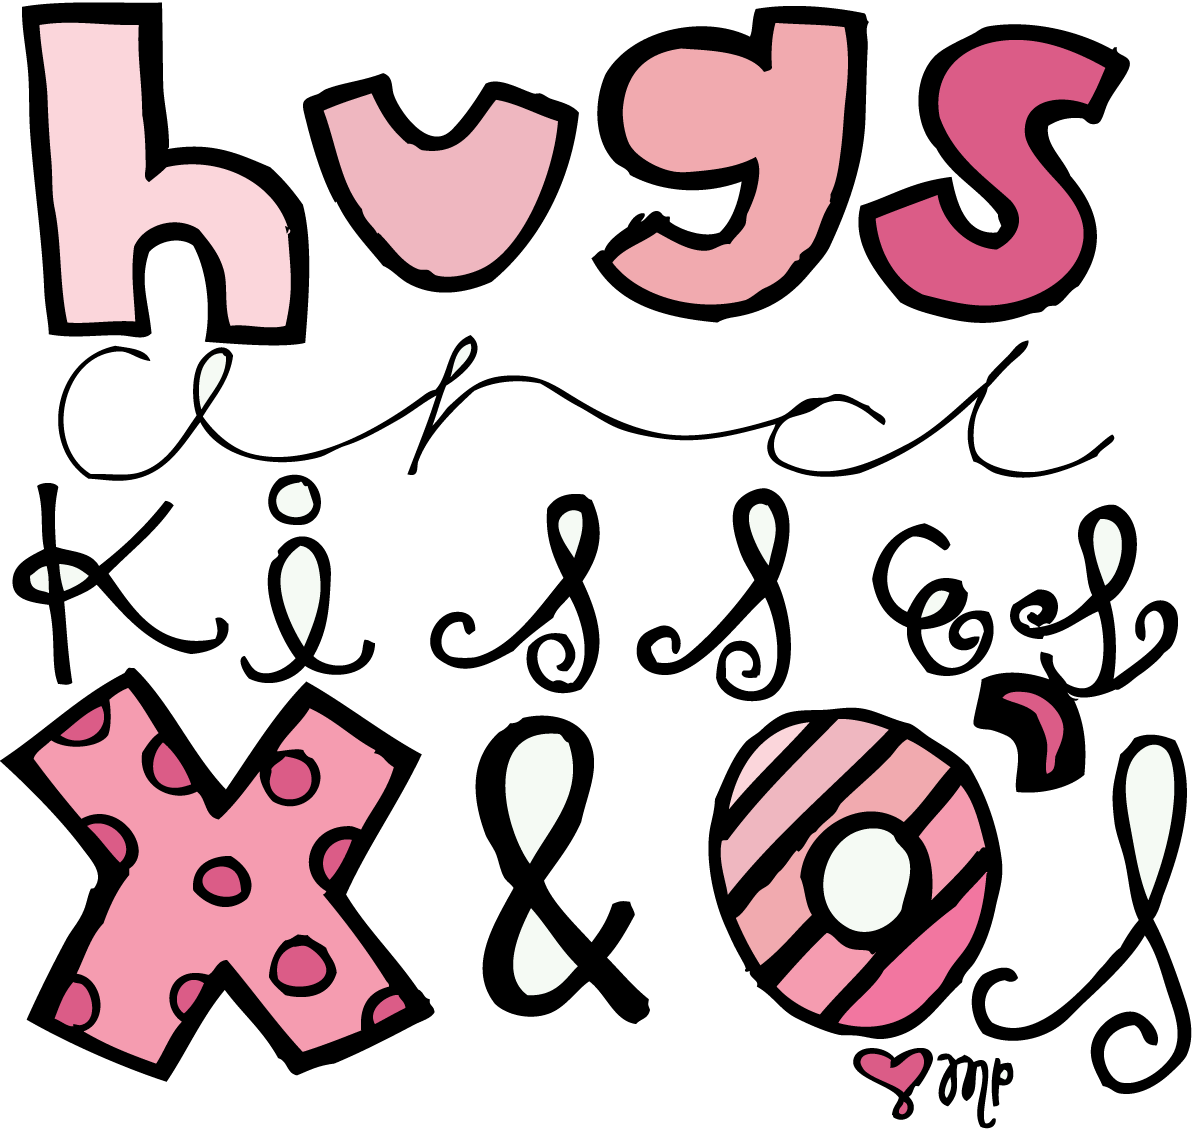 Free Hugs Cliparts, Download Free Clip Art, Free Clip Art on Clipart.